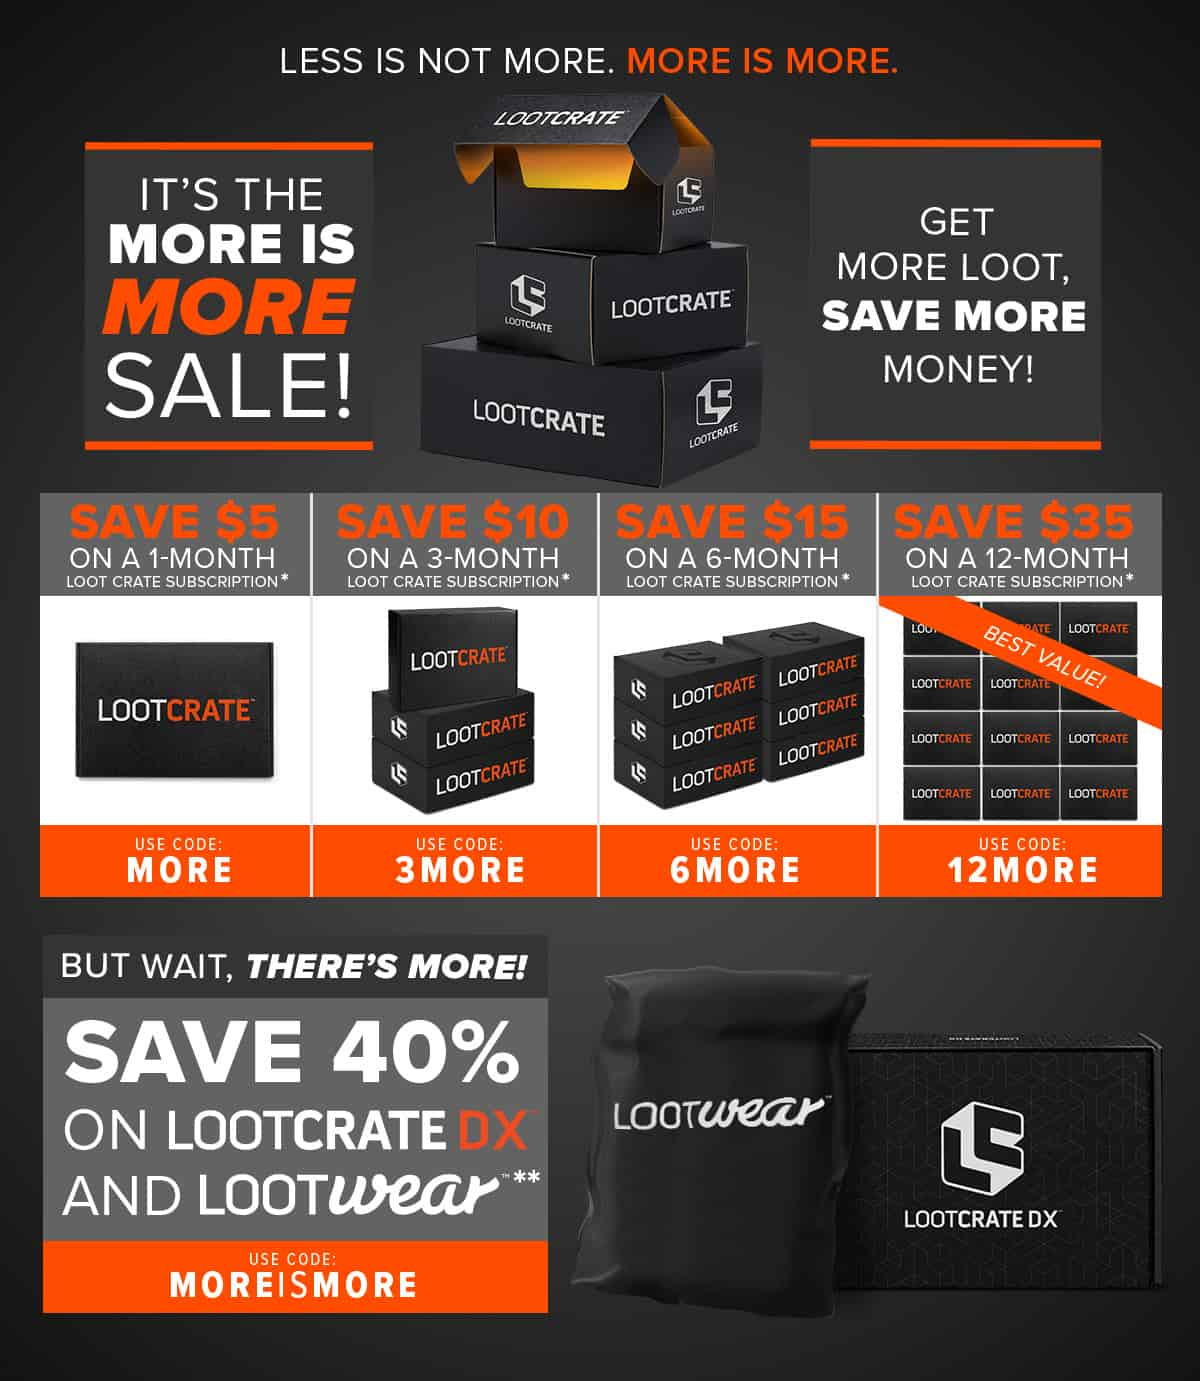 Up to $35 OFF Loot Crate + 40% OFF DX + Wear